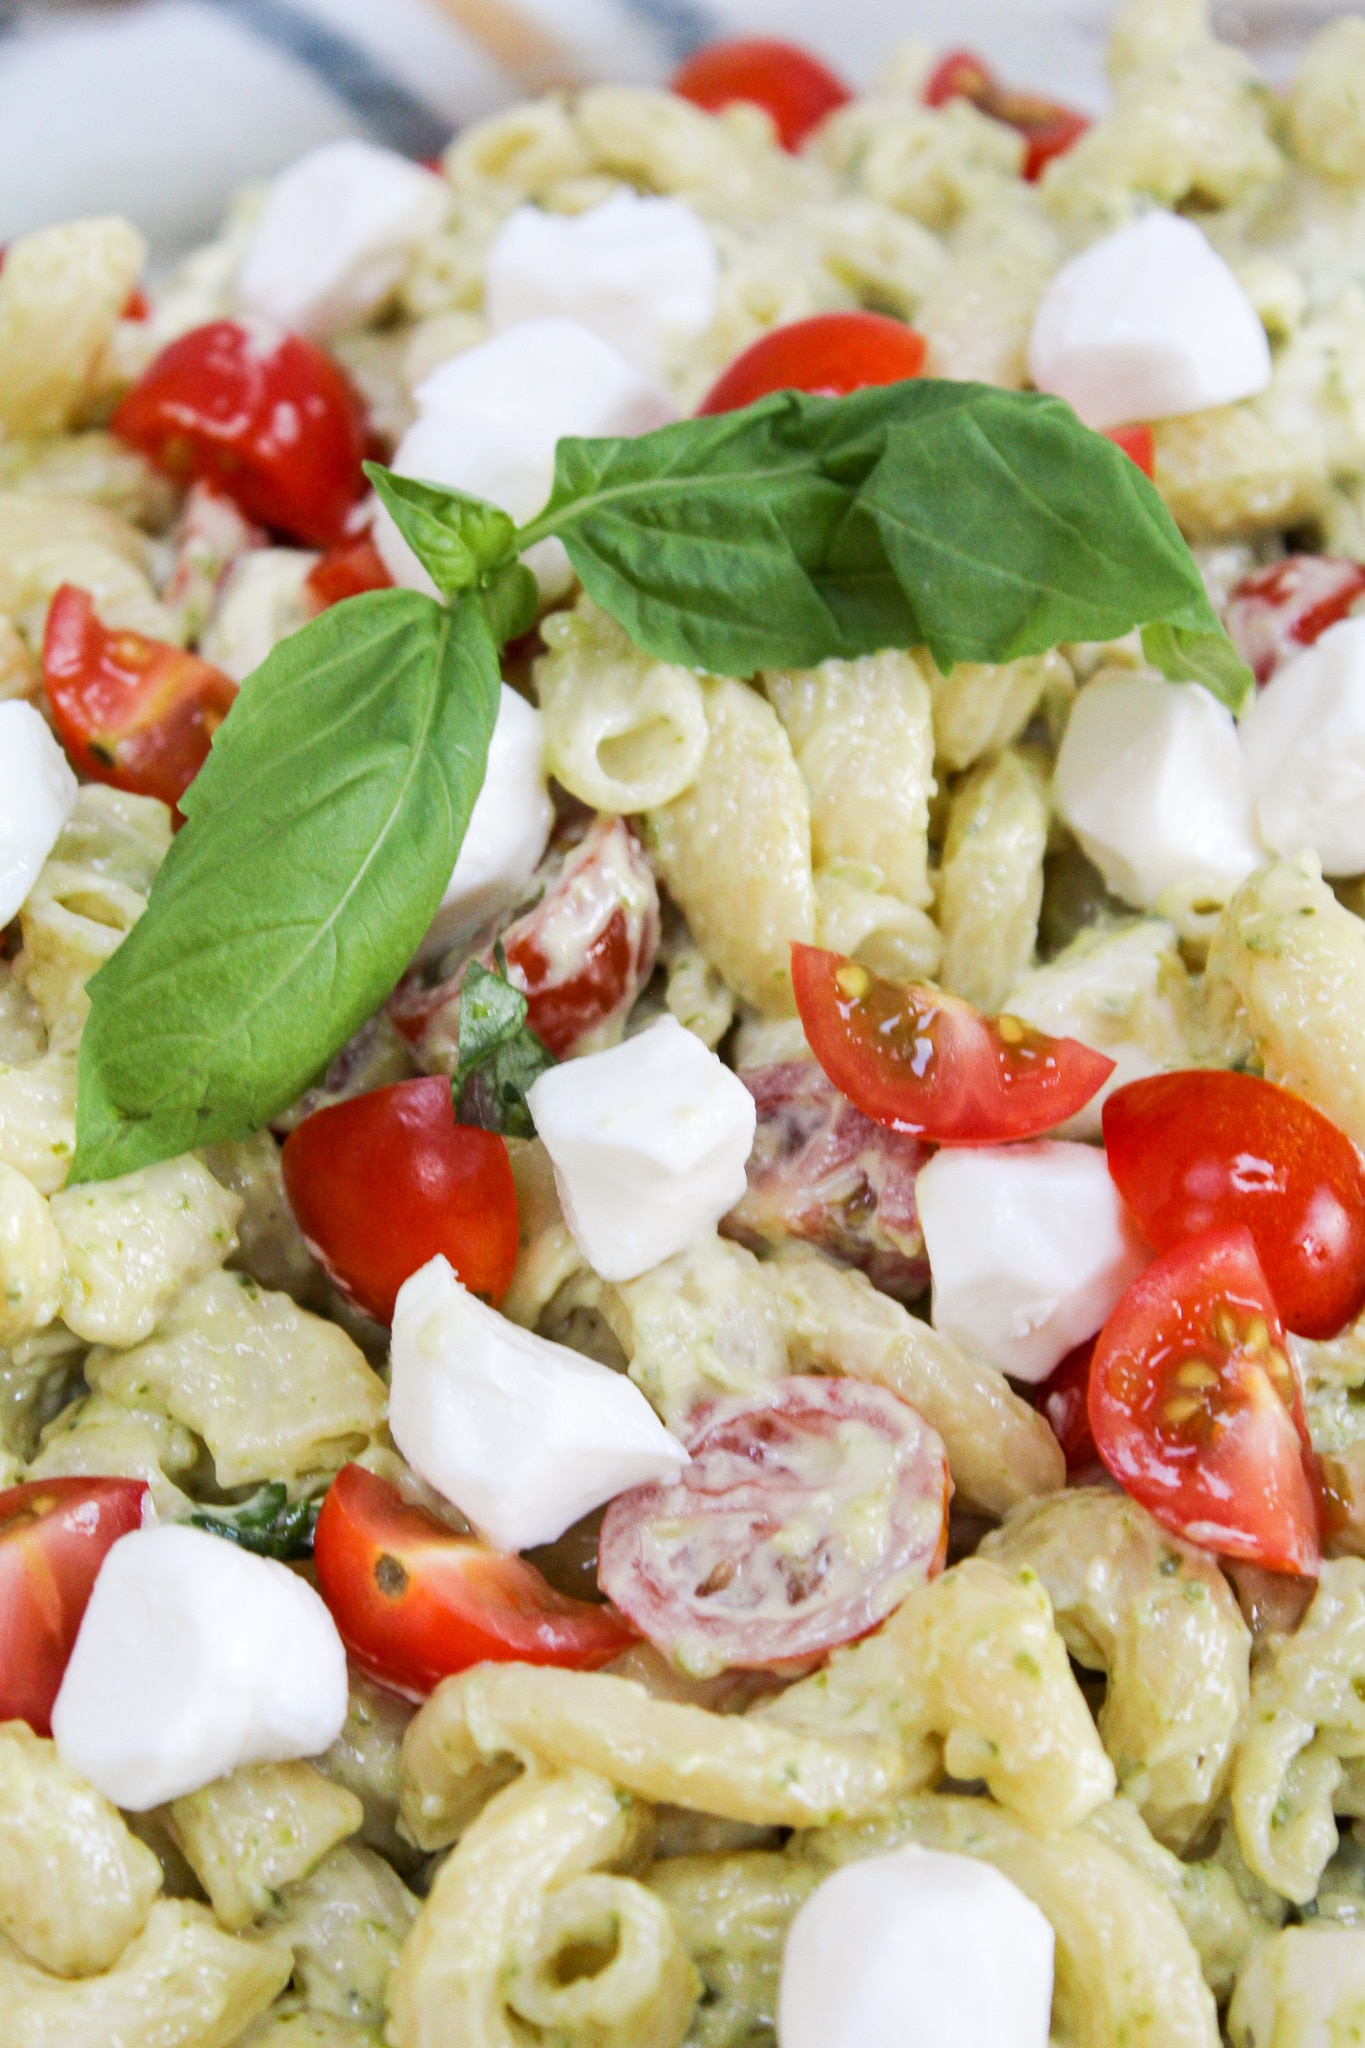 close-up picture of pasta salad with basil leaves